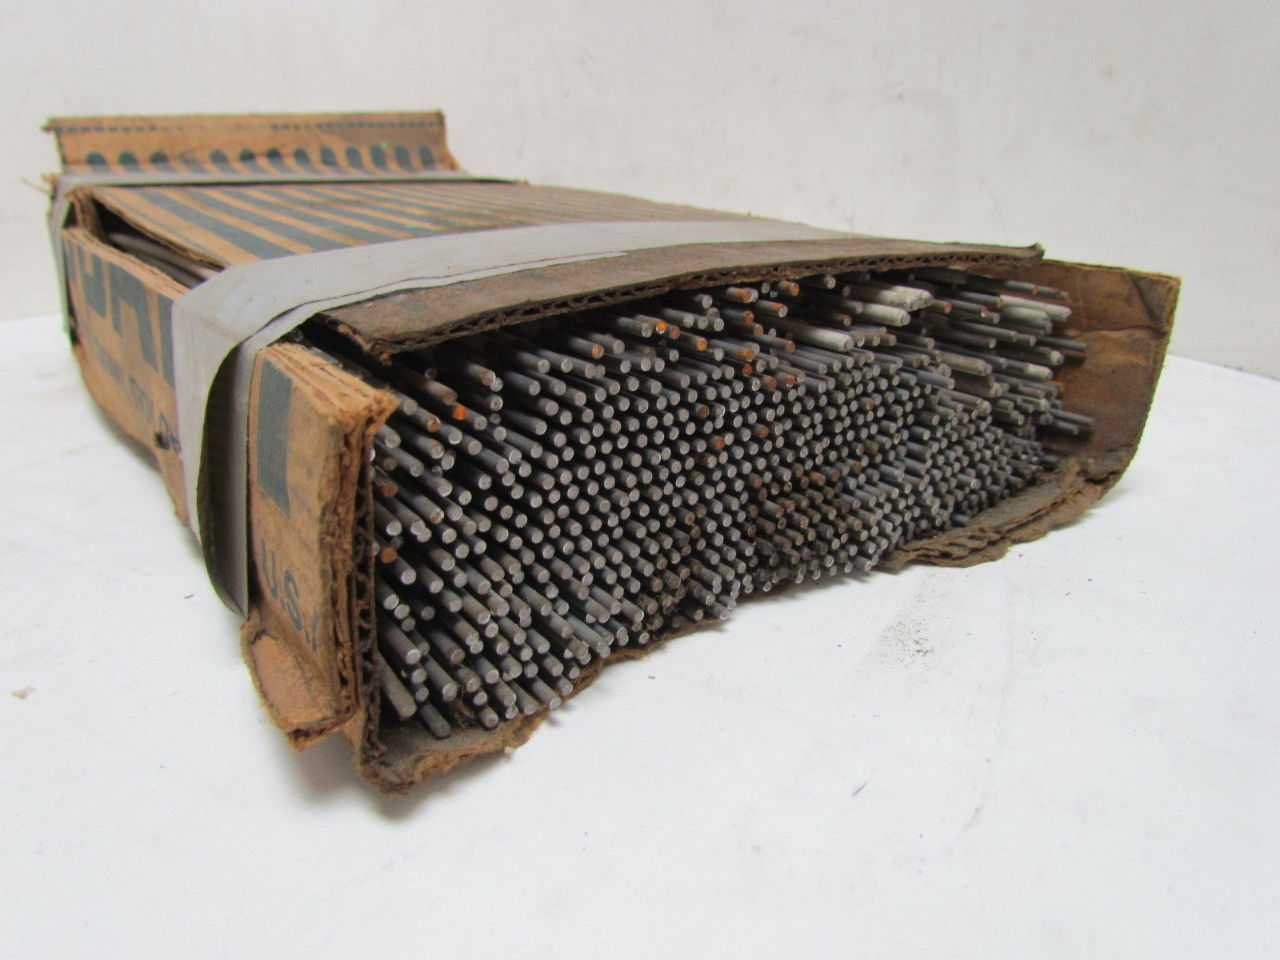 how to choose welding rods